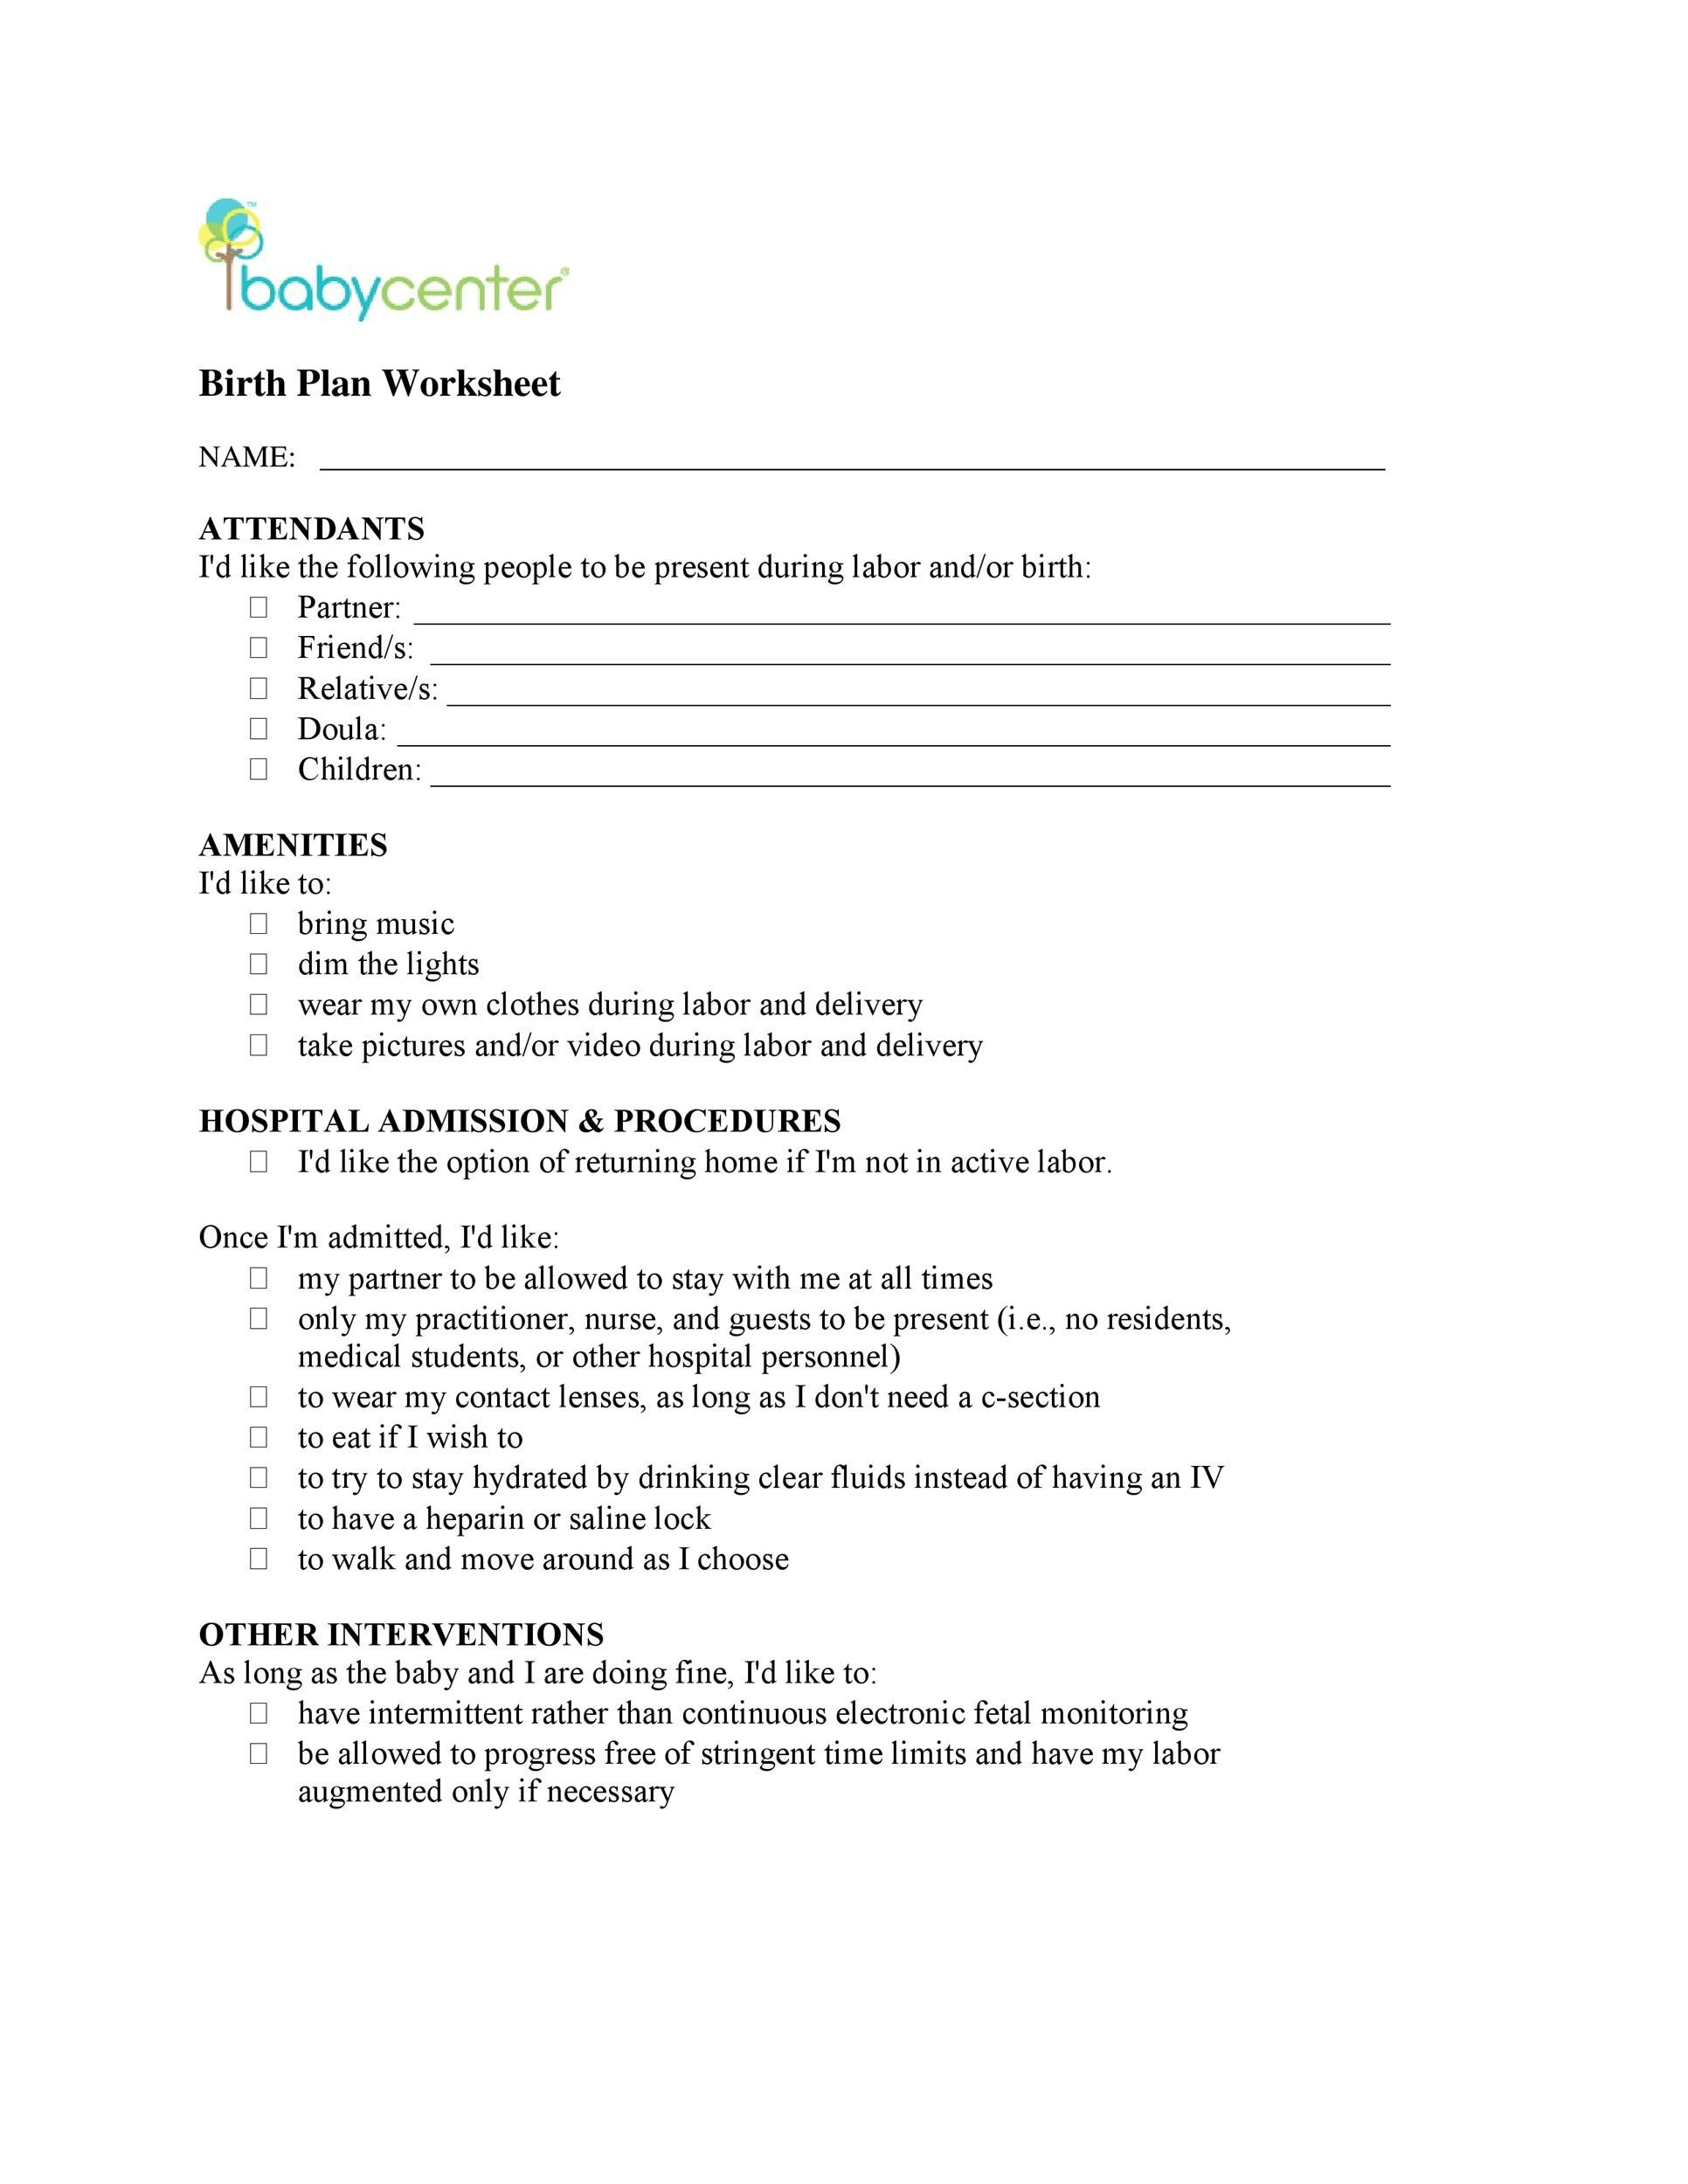 image about Birth Plan Printable identify 47+ Printable Beginning Application Templates [Beginning Application List] ᐅ